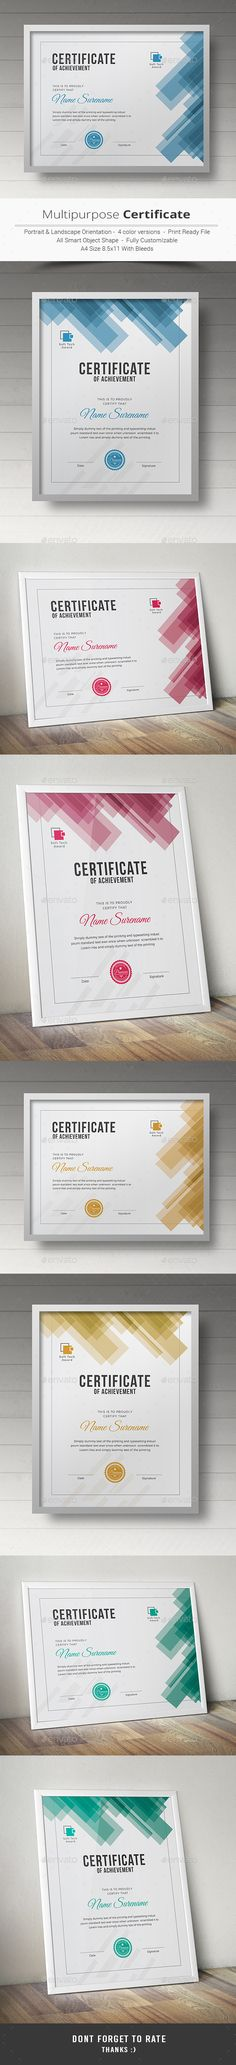 Certificate Template PSD. Download here: https://graphicriver.net/item/certificate/17623701?ref=ksioks